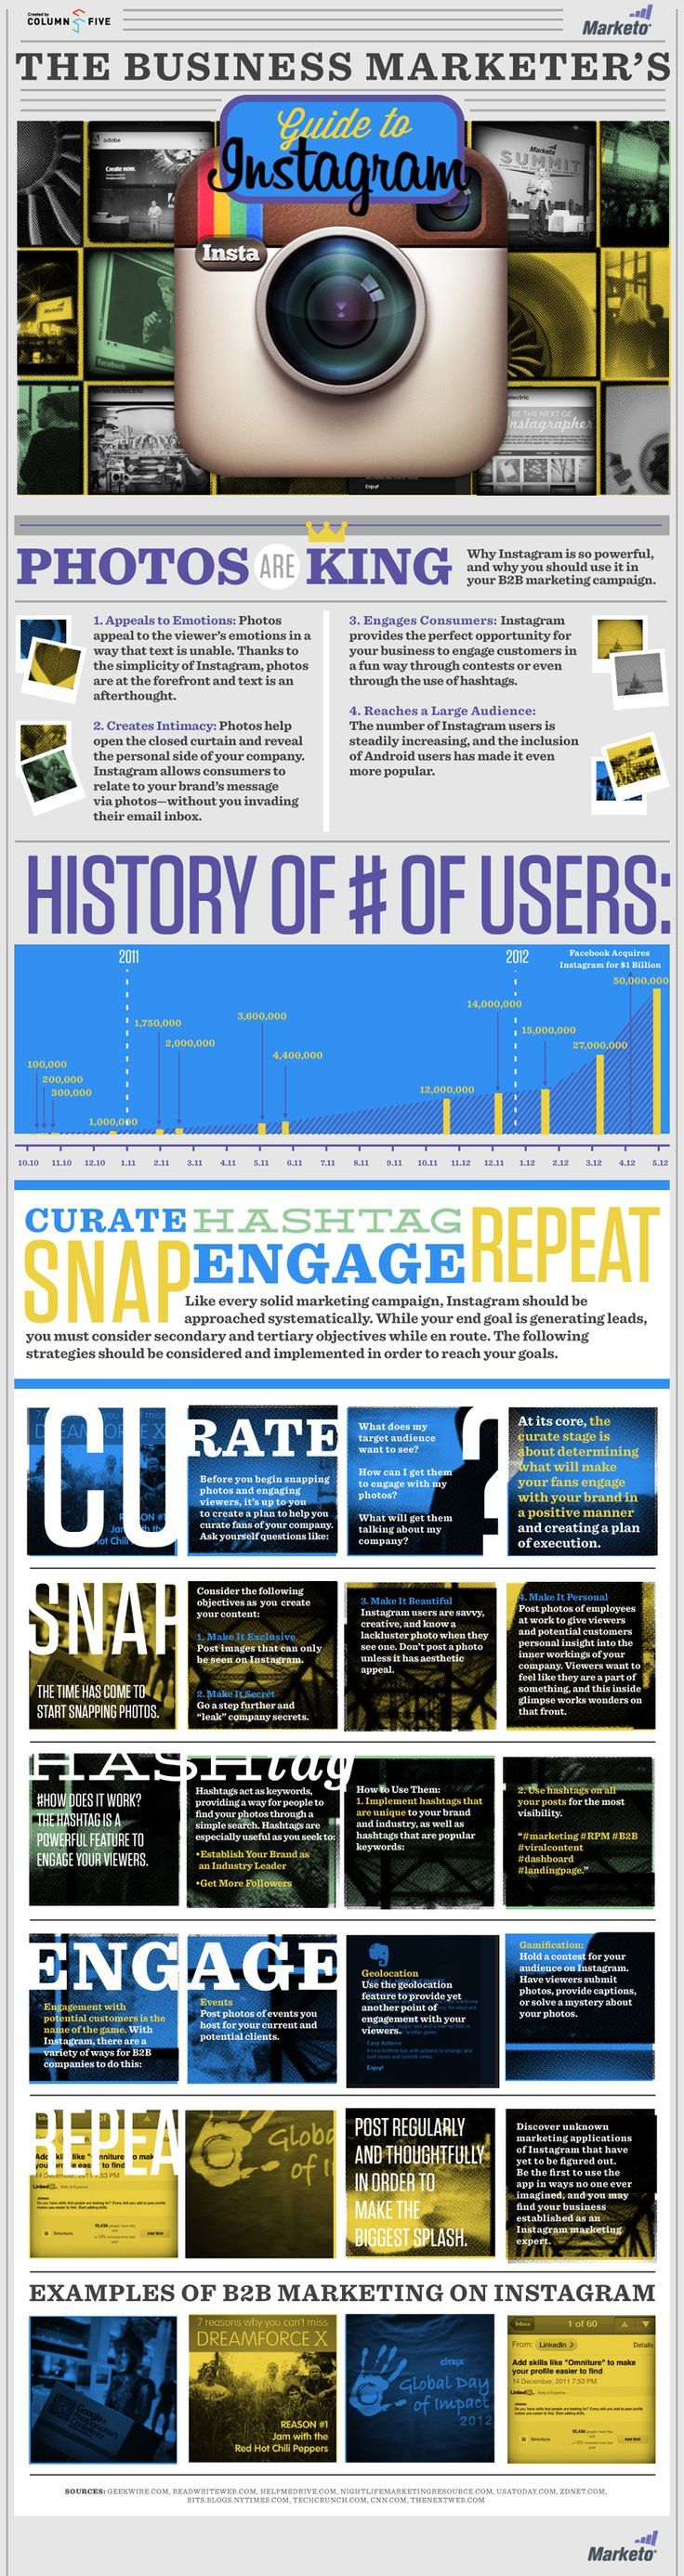 Guide to Instagram http://infographiclist.files.wordpress.com/2013/07/the-business-marketers-guide-to-instagram_503fd7d03700f.jpg